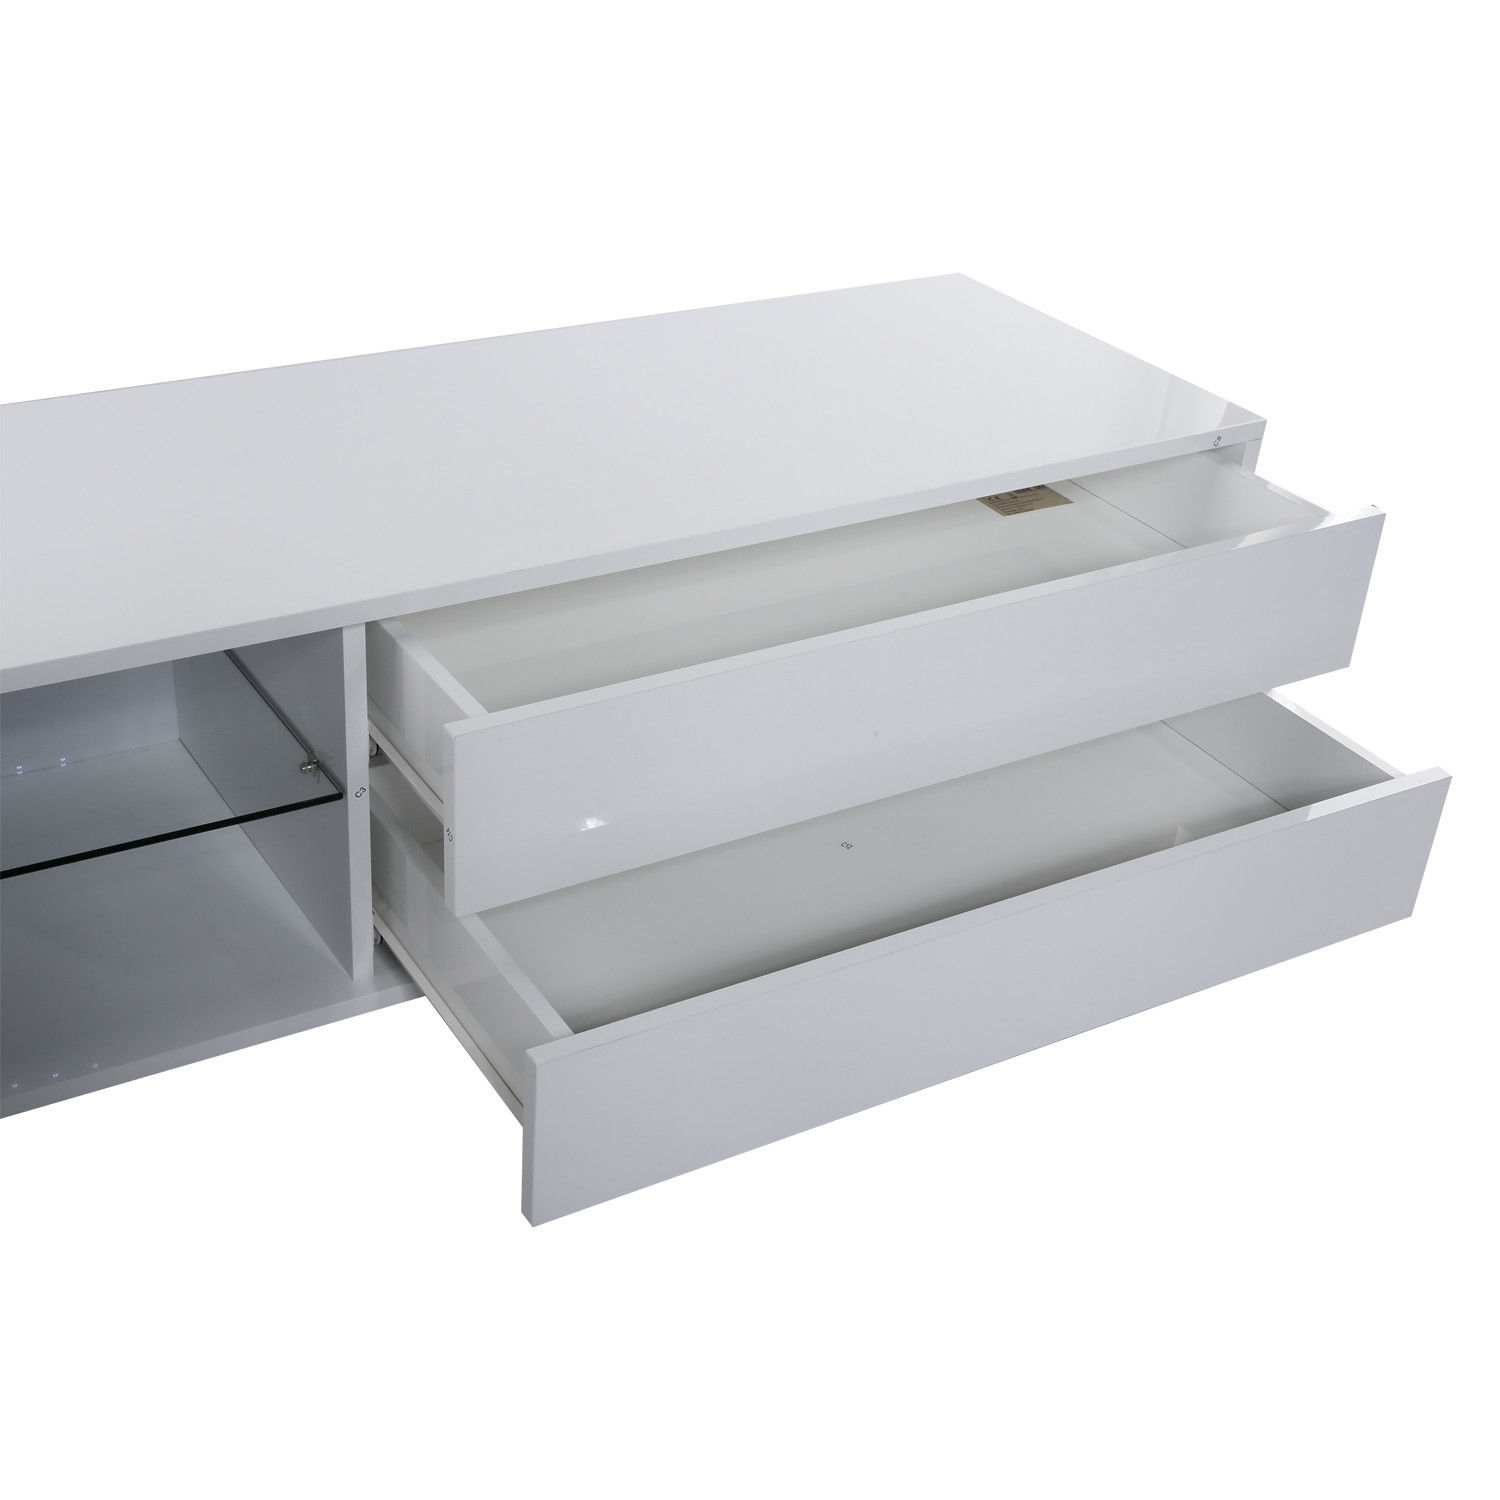 Details About Led Light Shelves Drawer High Gloss Tv Cabinet Stand Wall  Mounted